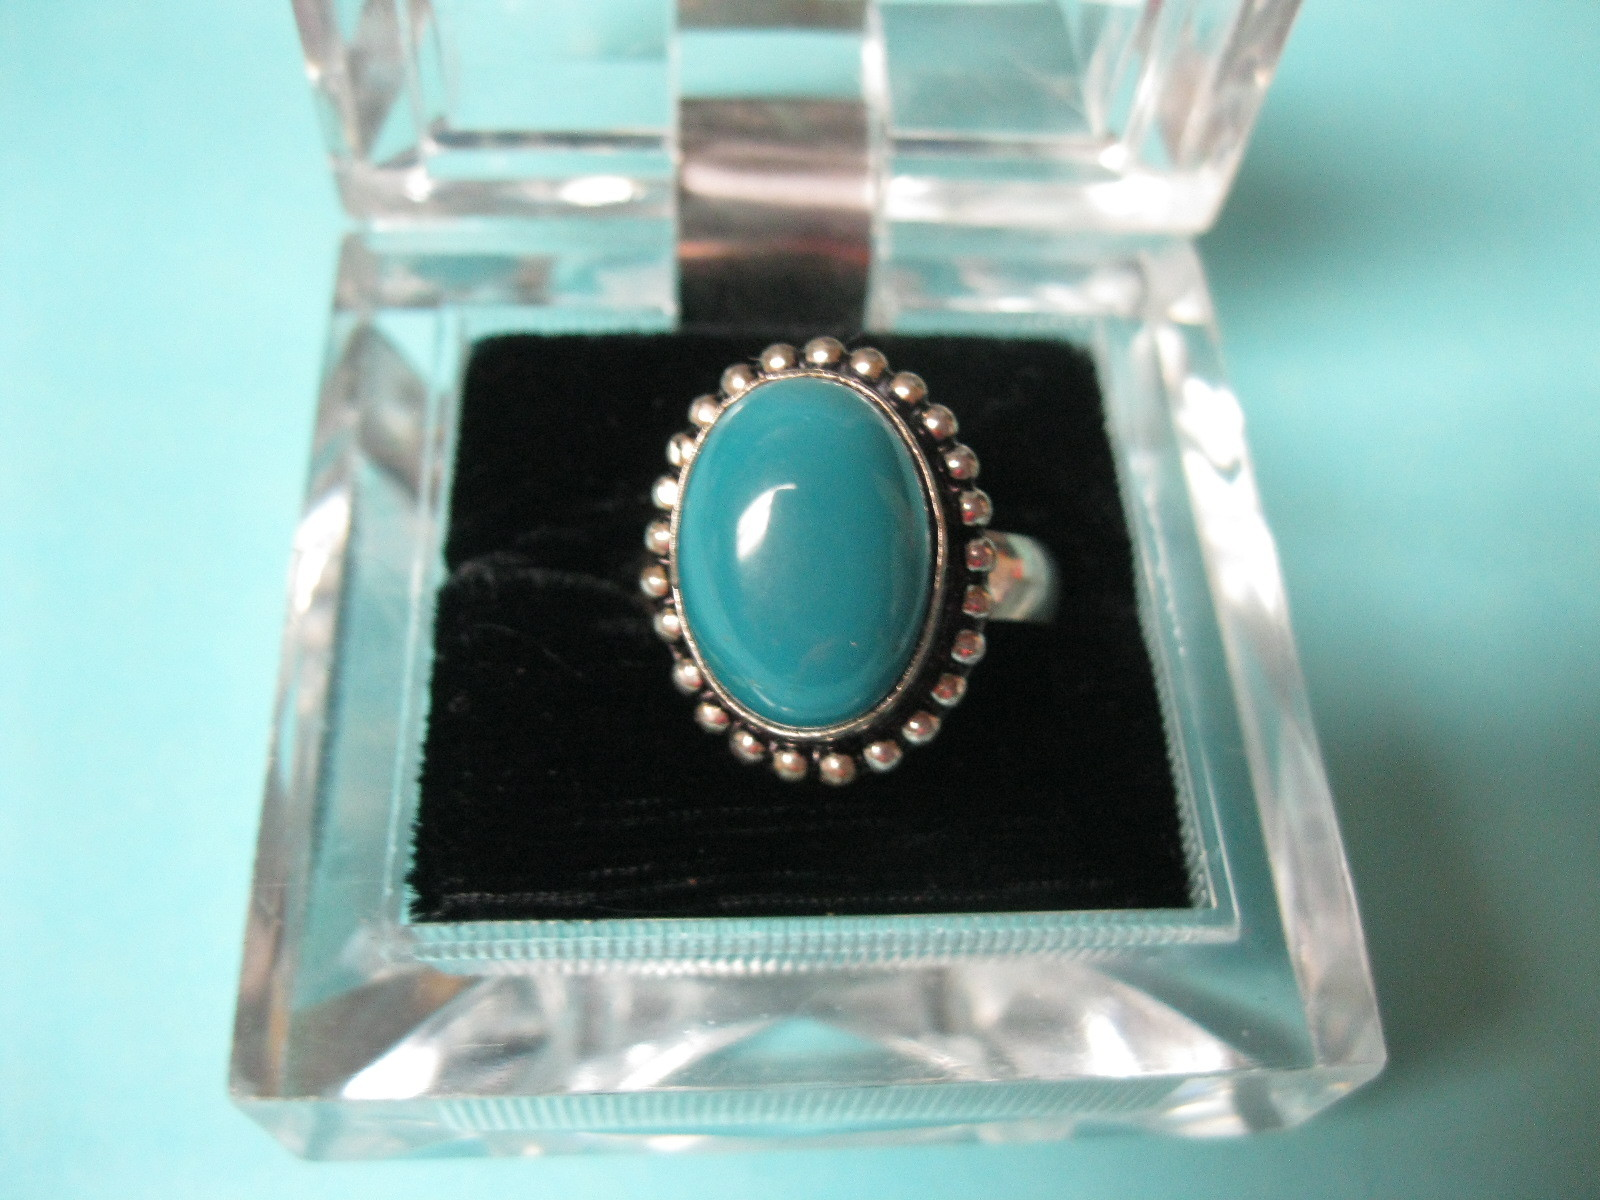 Vintage Aqua vintage Art Glass ring about 1 inch knuckle ring size 6.5